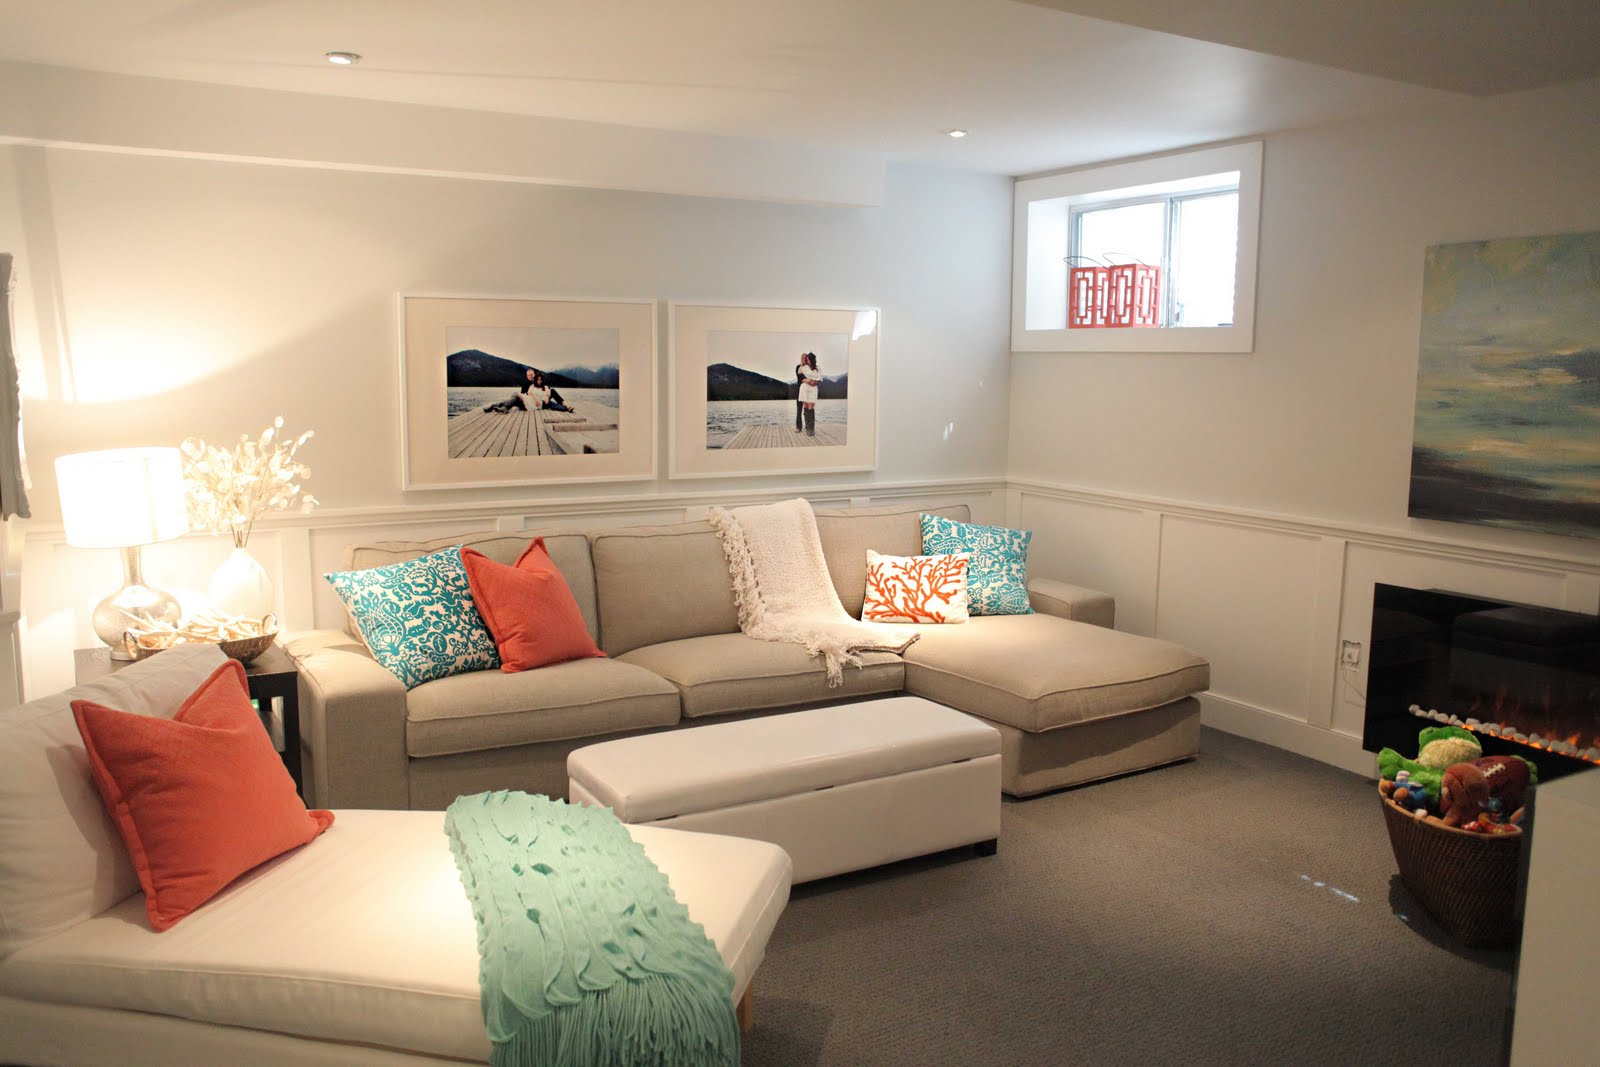 How To Decorate Basement